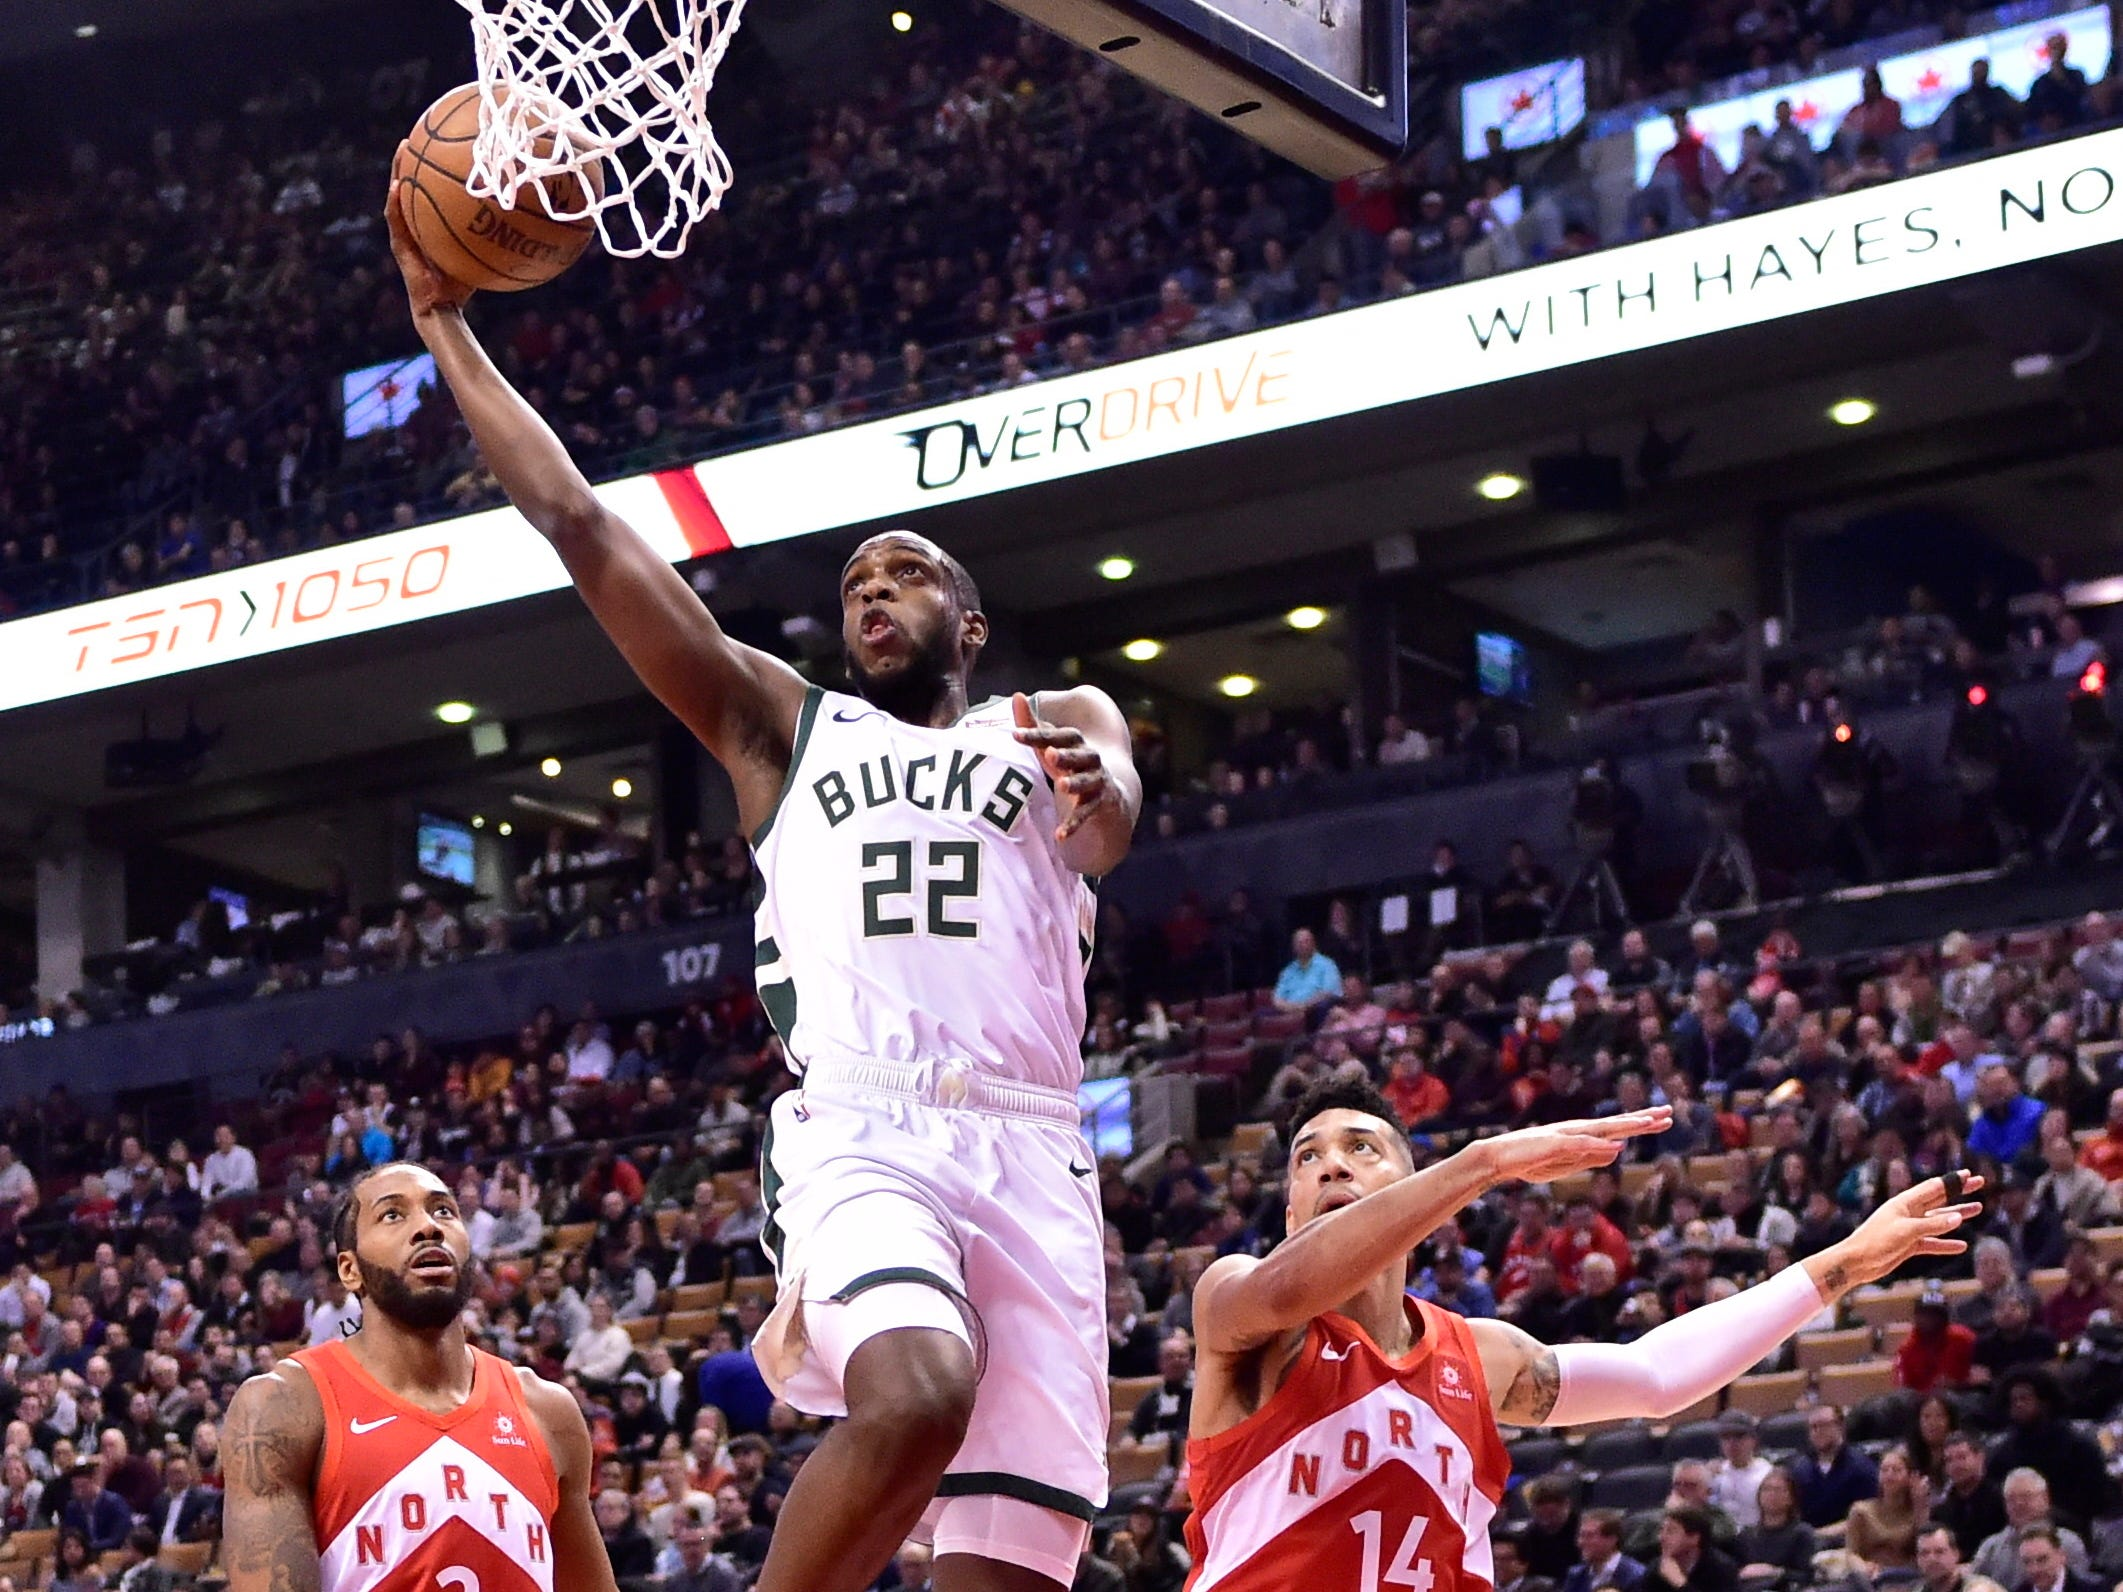 Bucks forward Khris Middleton gets between Kawhi Leonard (2) and Danny Green of the Raptors for a dunk during first-half action Thursday night.